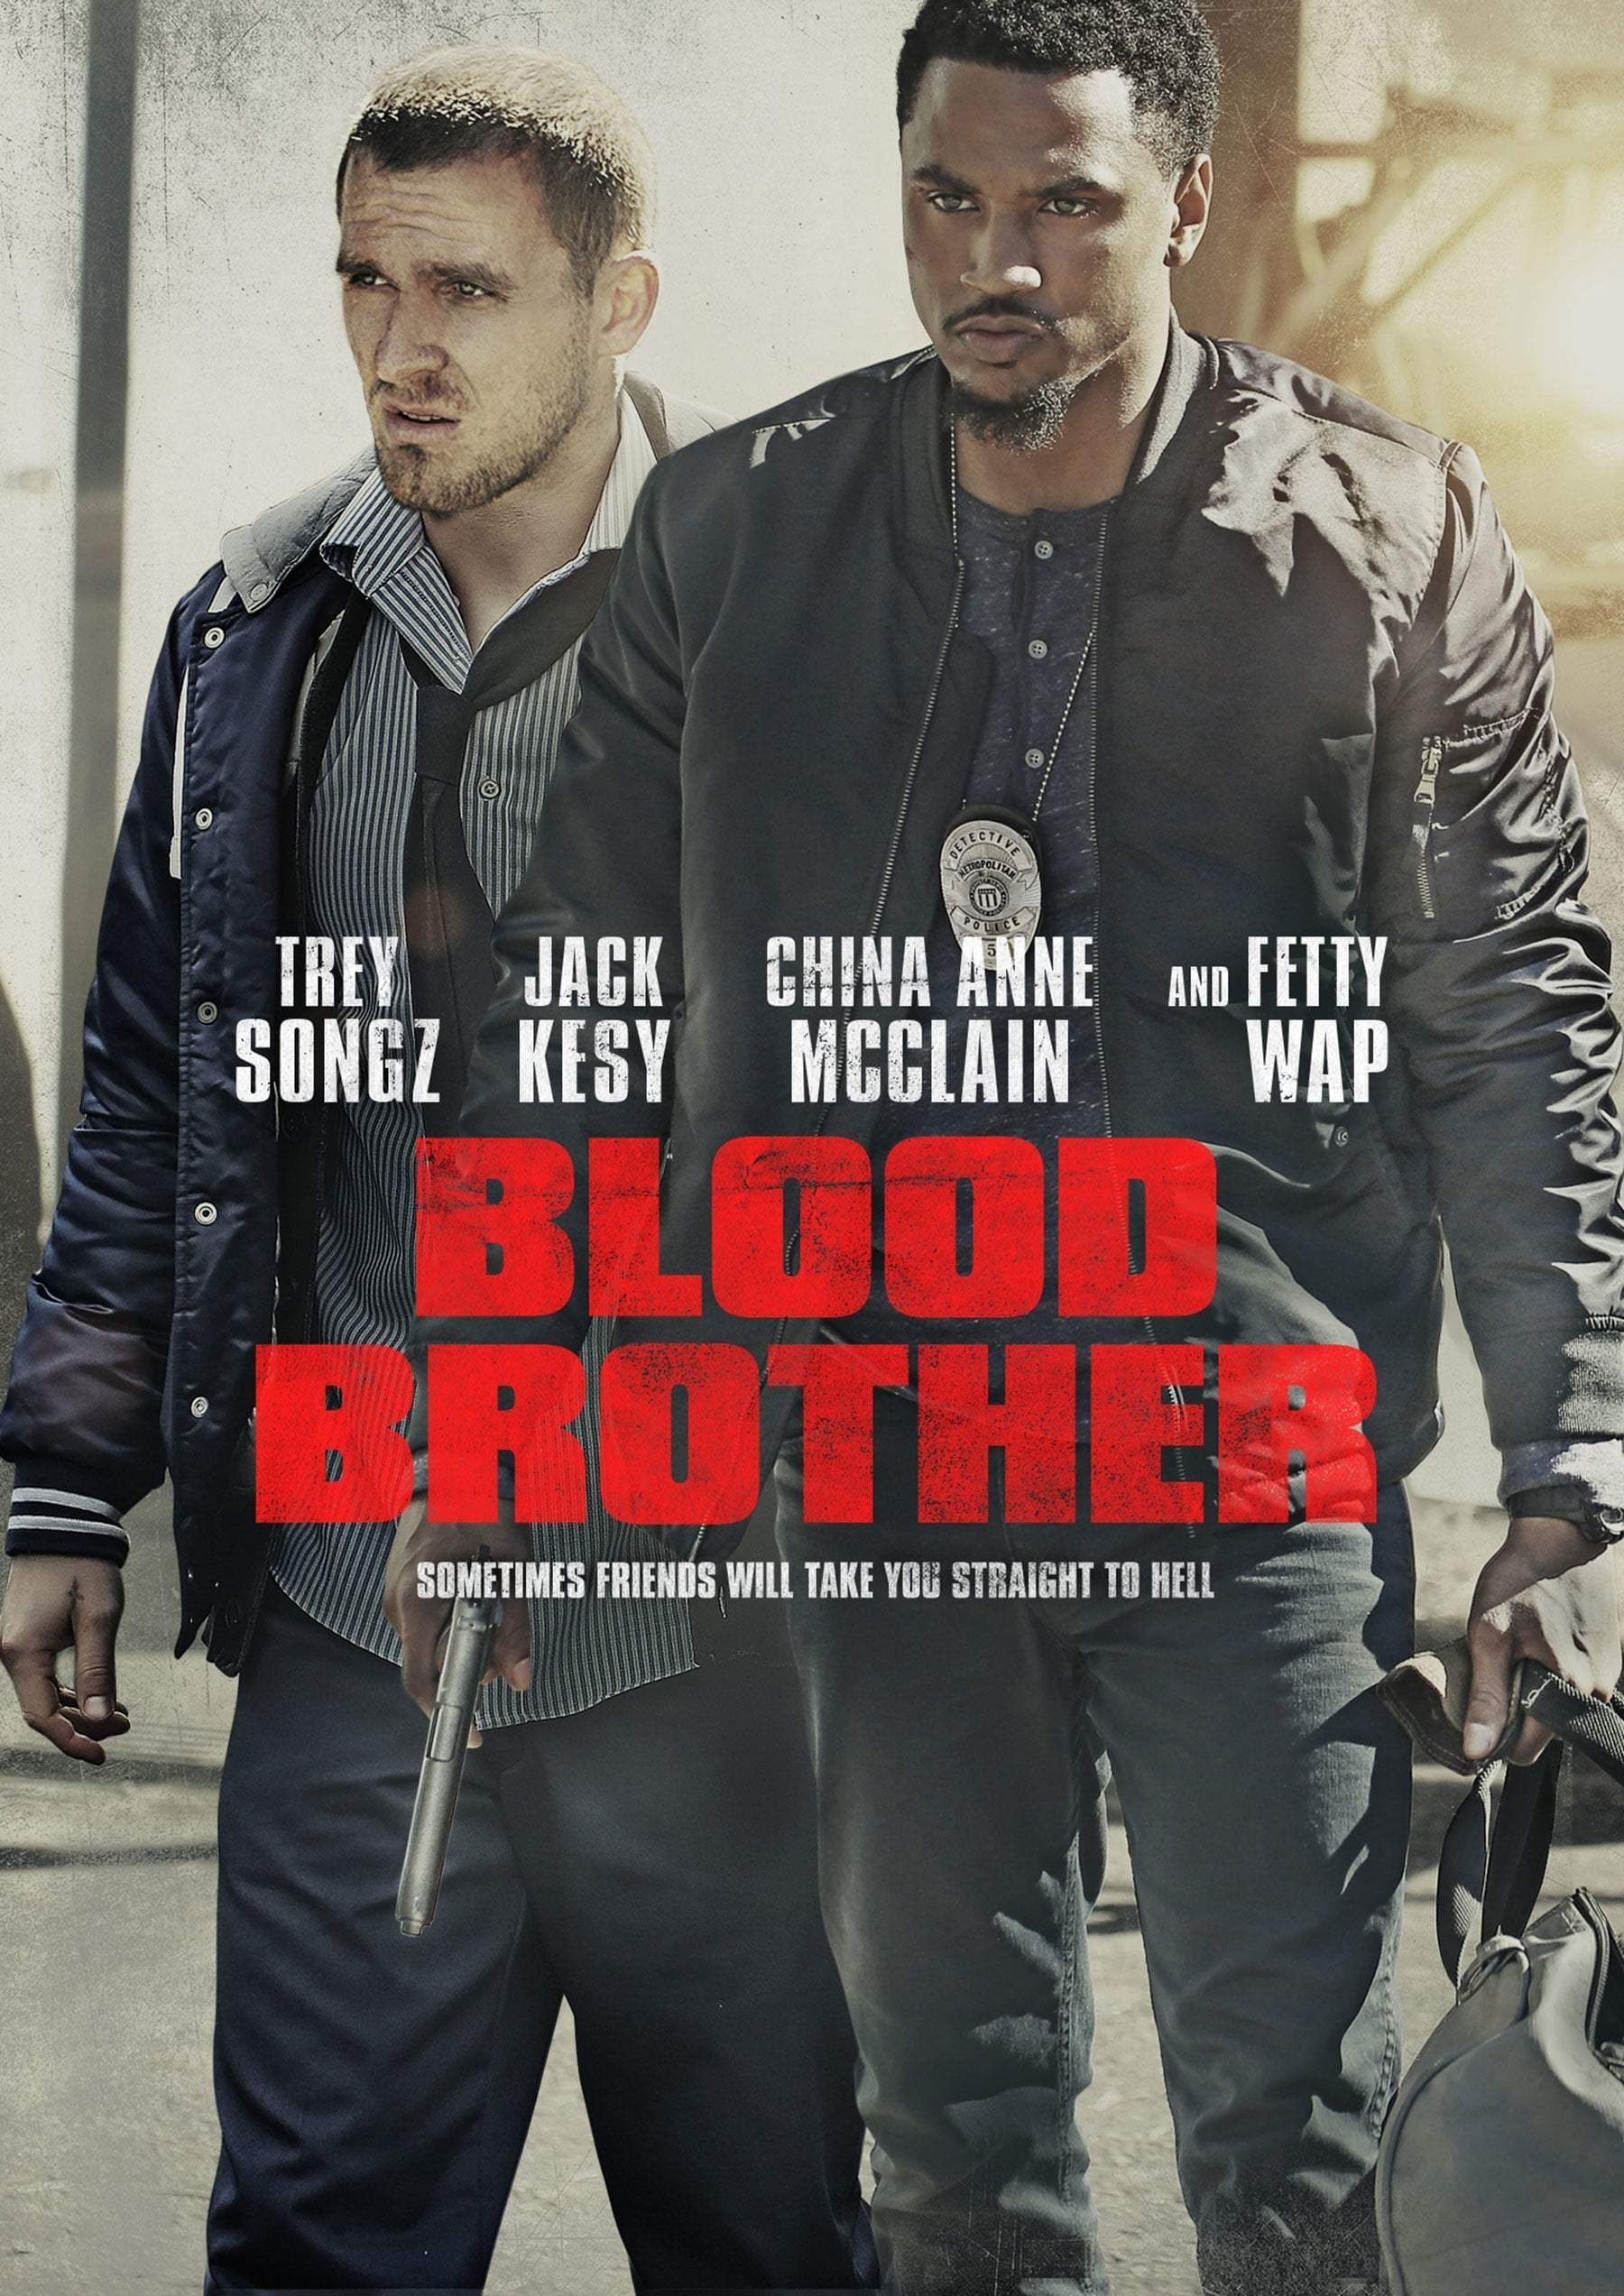 Blood Brother (2018) Blood Brother takes place on the mean